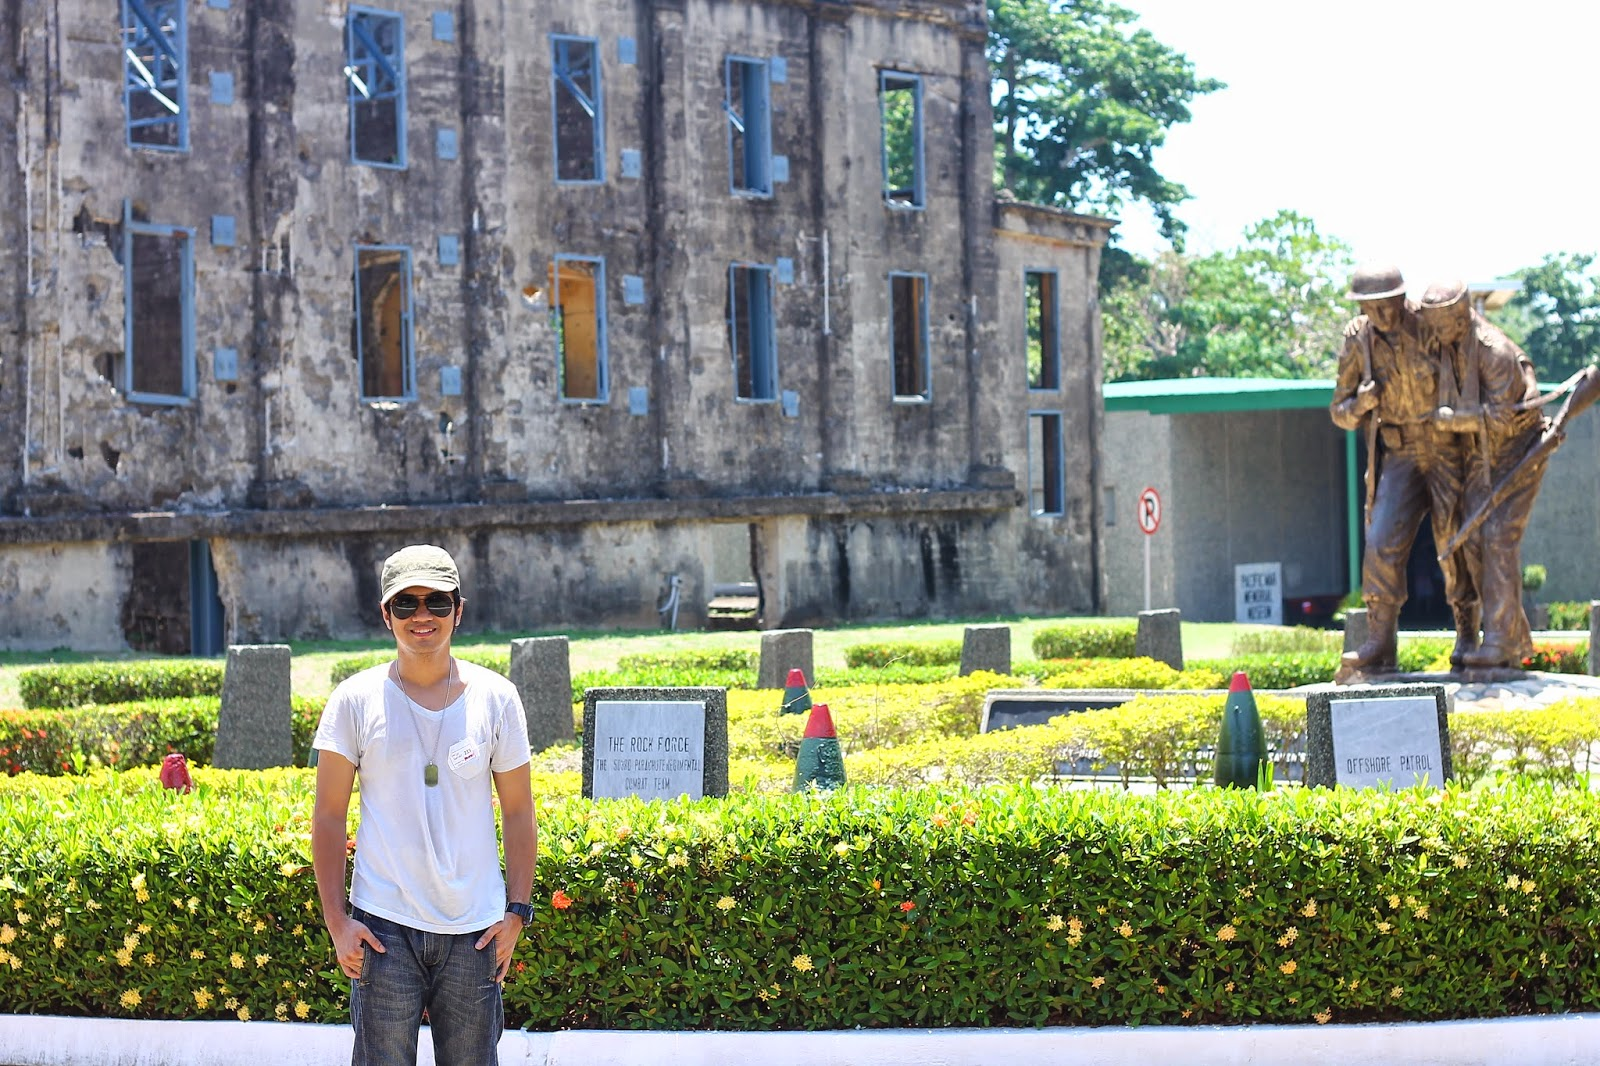 My pleasure to visit this war place area